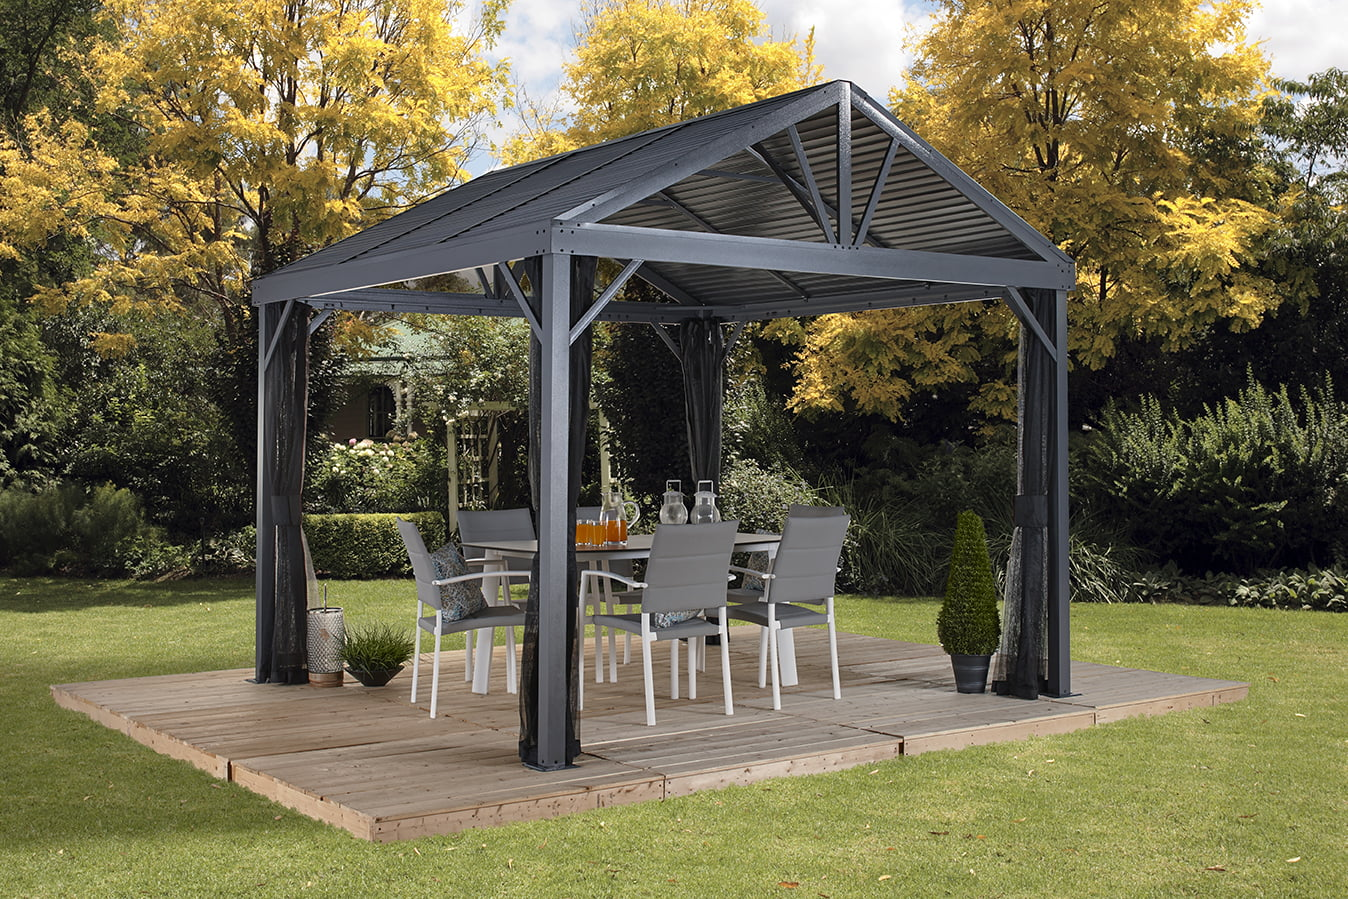 Sojag SANIBEL I 10x10 Gazebo, galvanised steel roof & mosquito netting by Gazebos